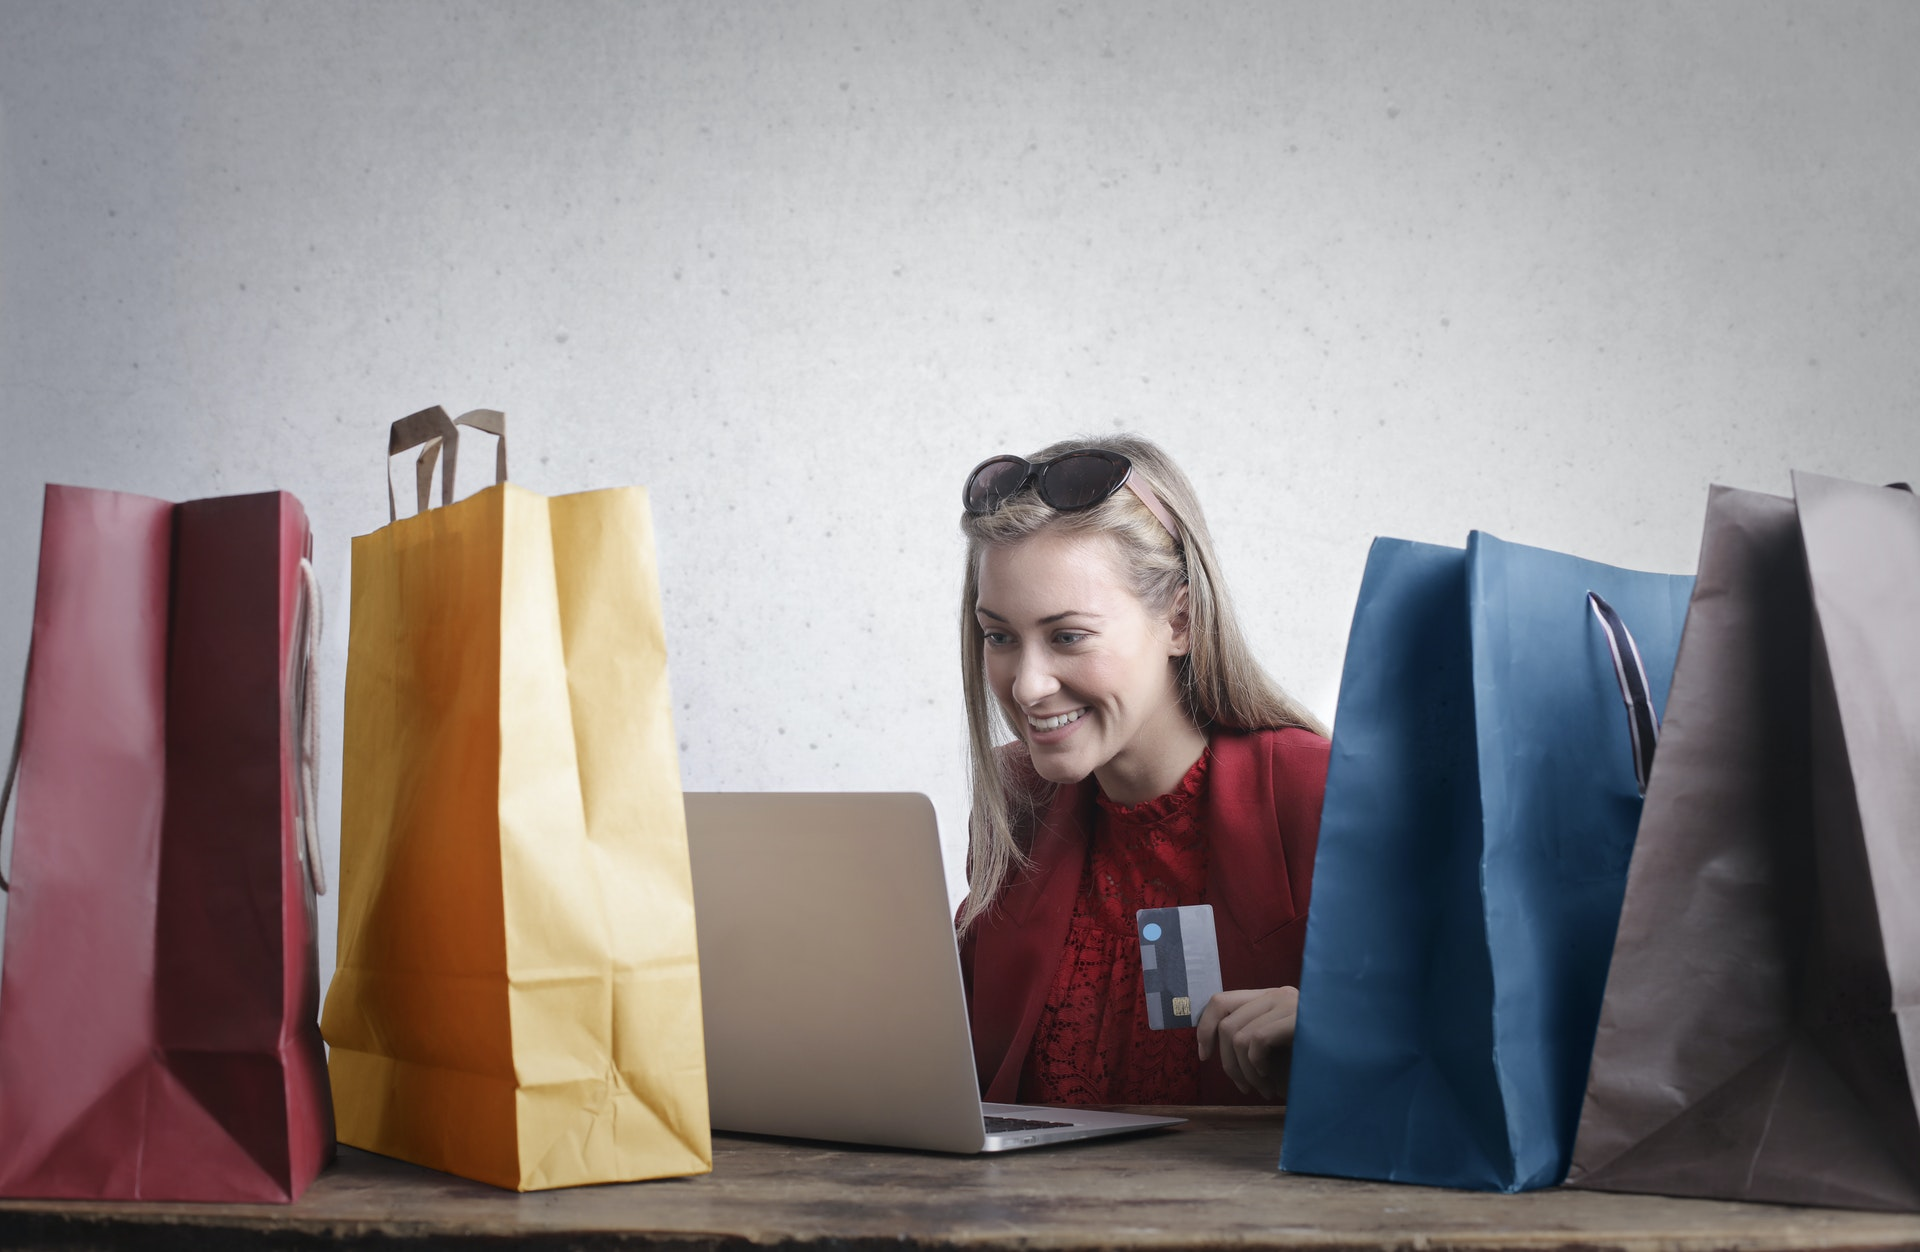 happy-woman-shopping-online-at-home-3769747.jpg